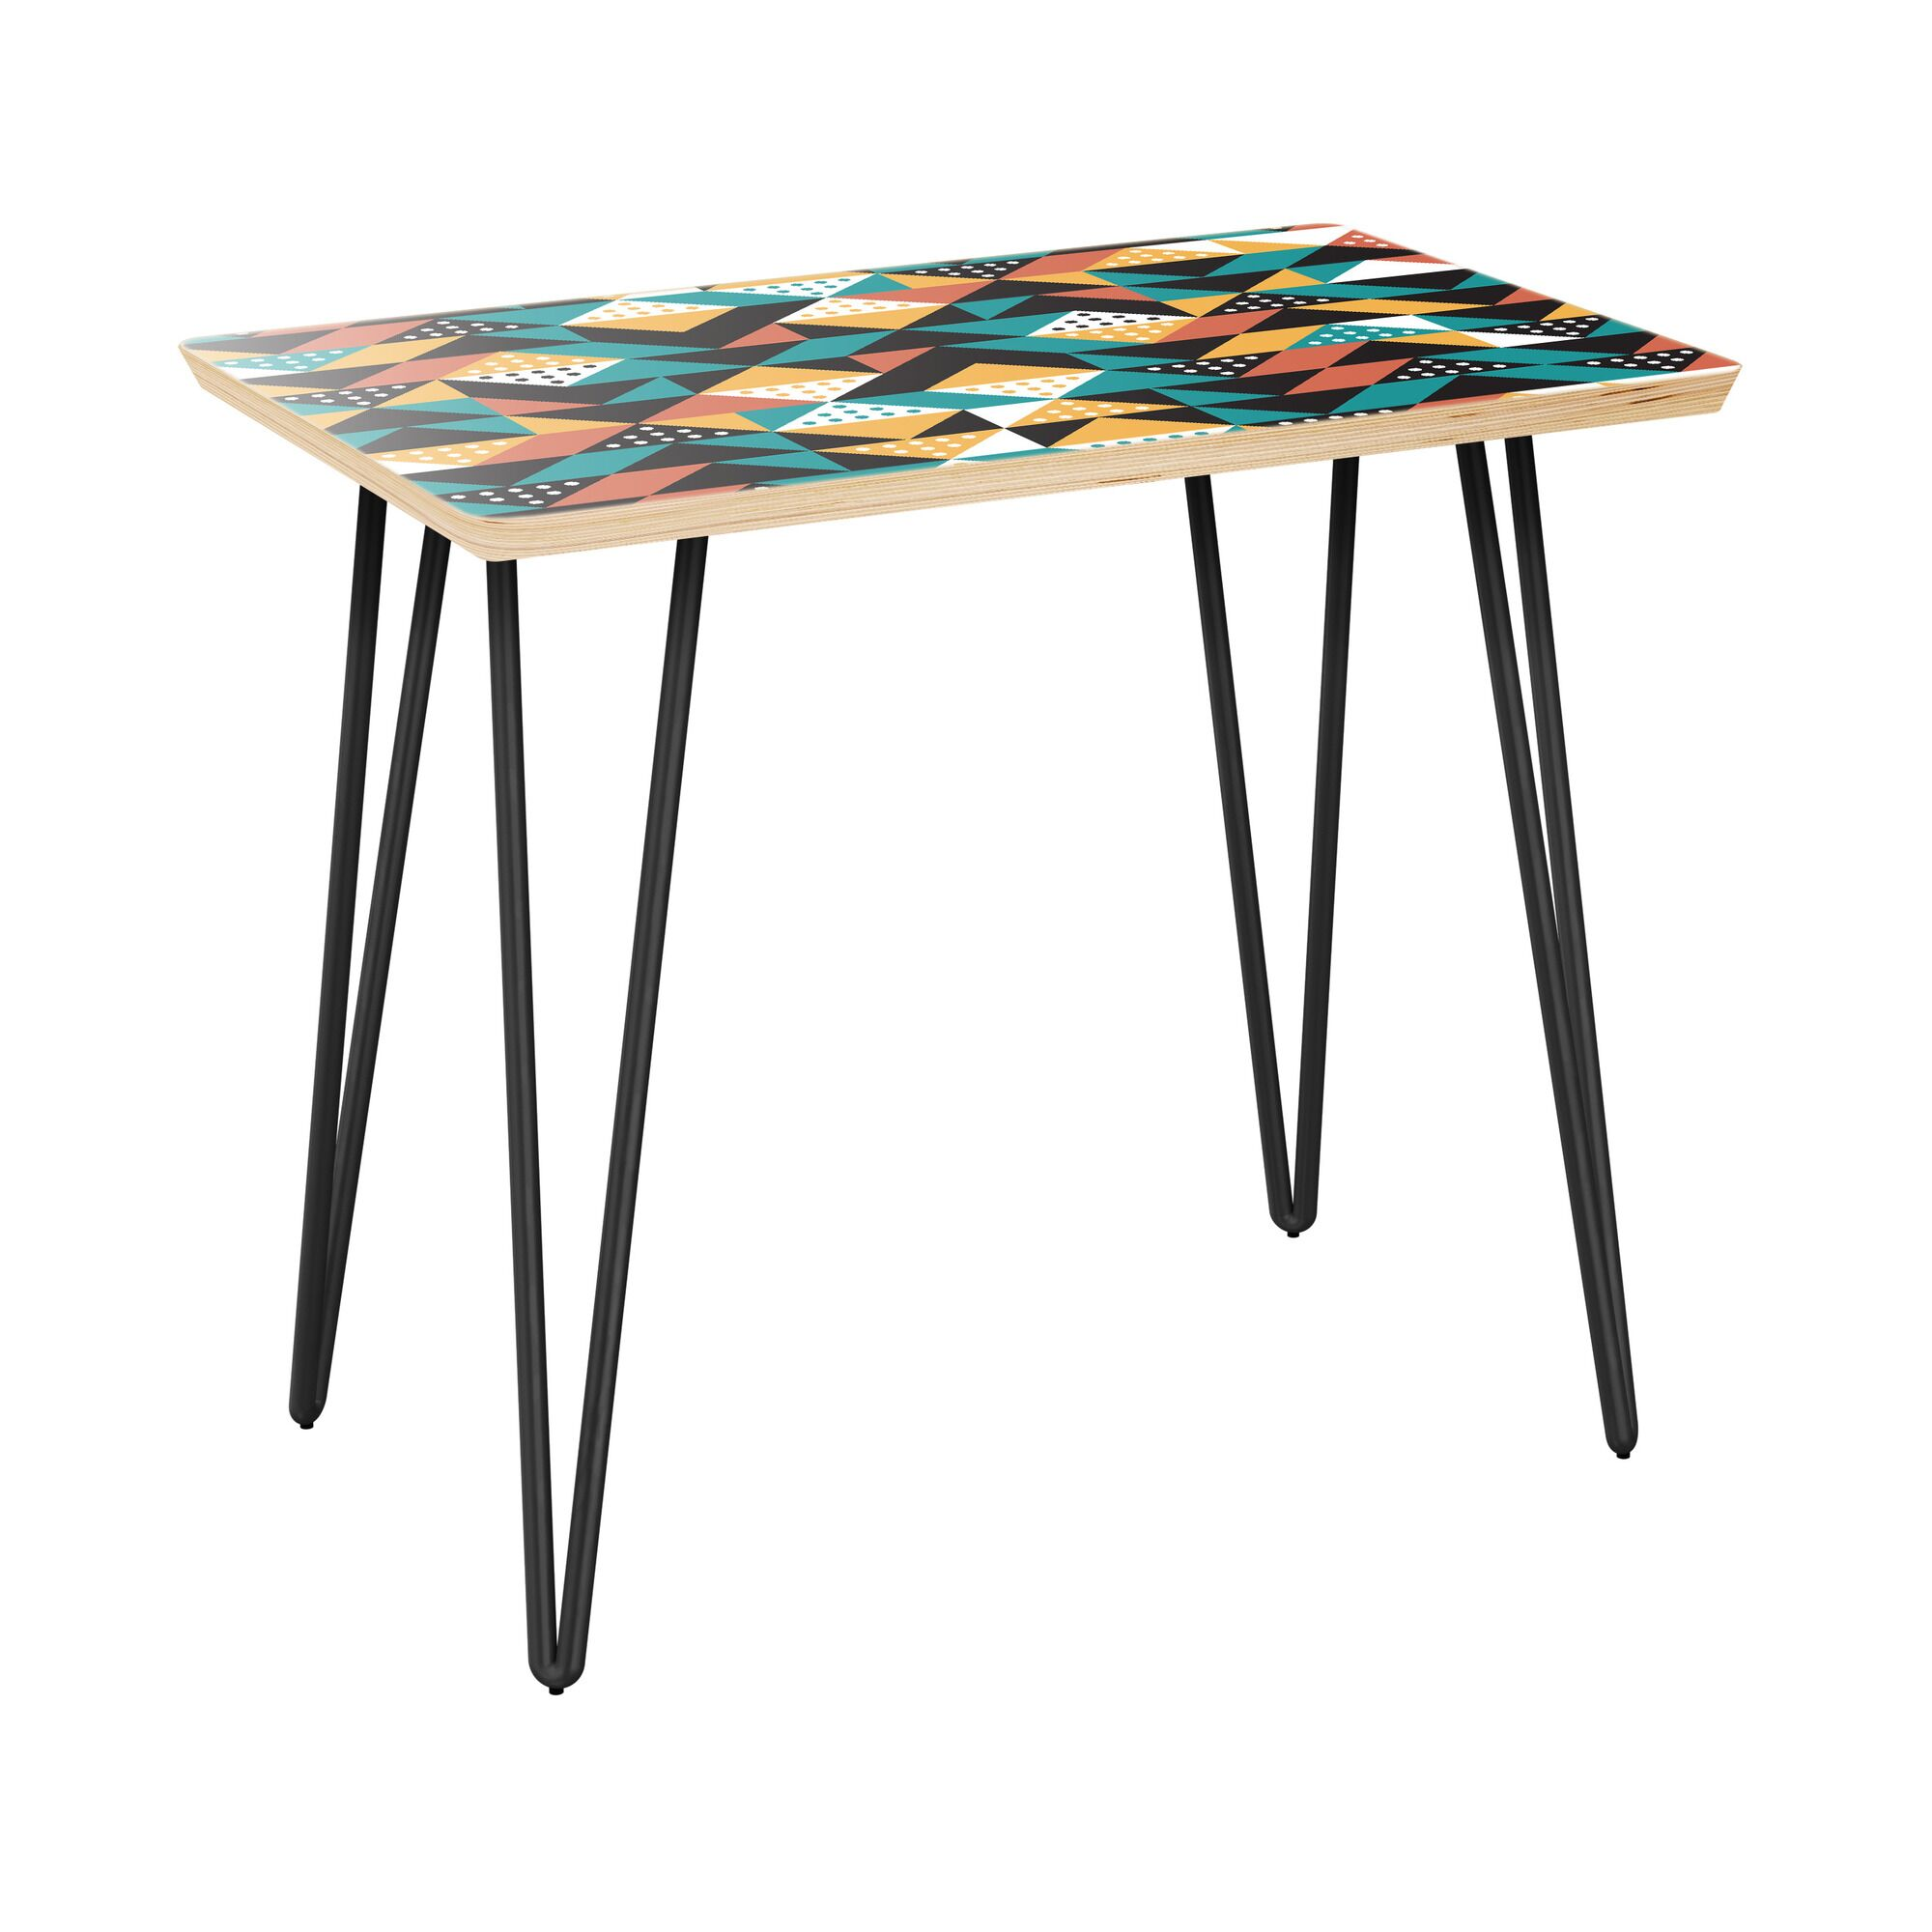 Appaloosa End Table Table Base Color: Black, Table Top Color: Natural